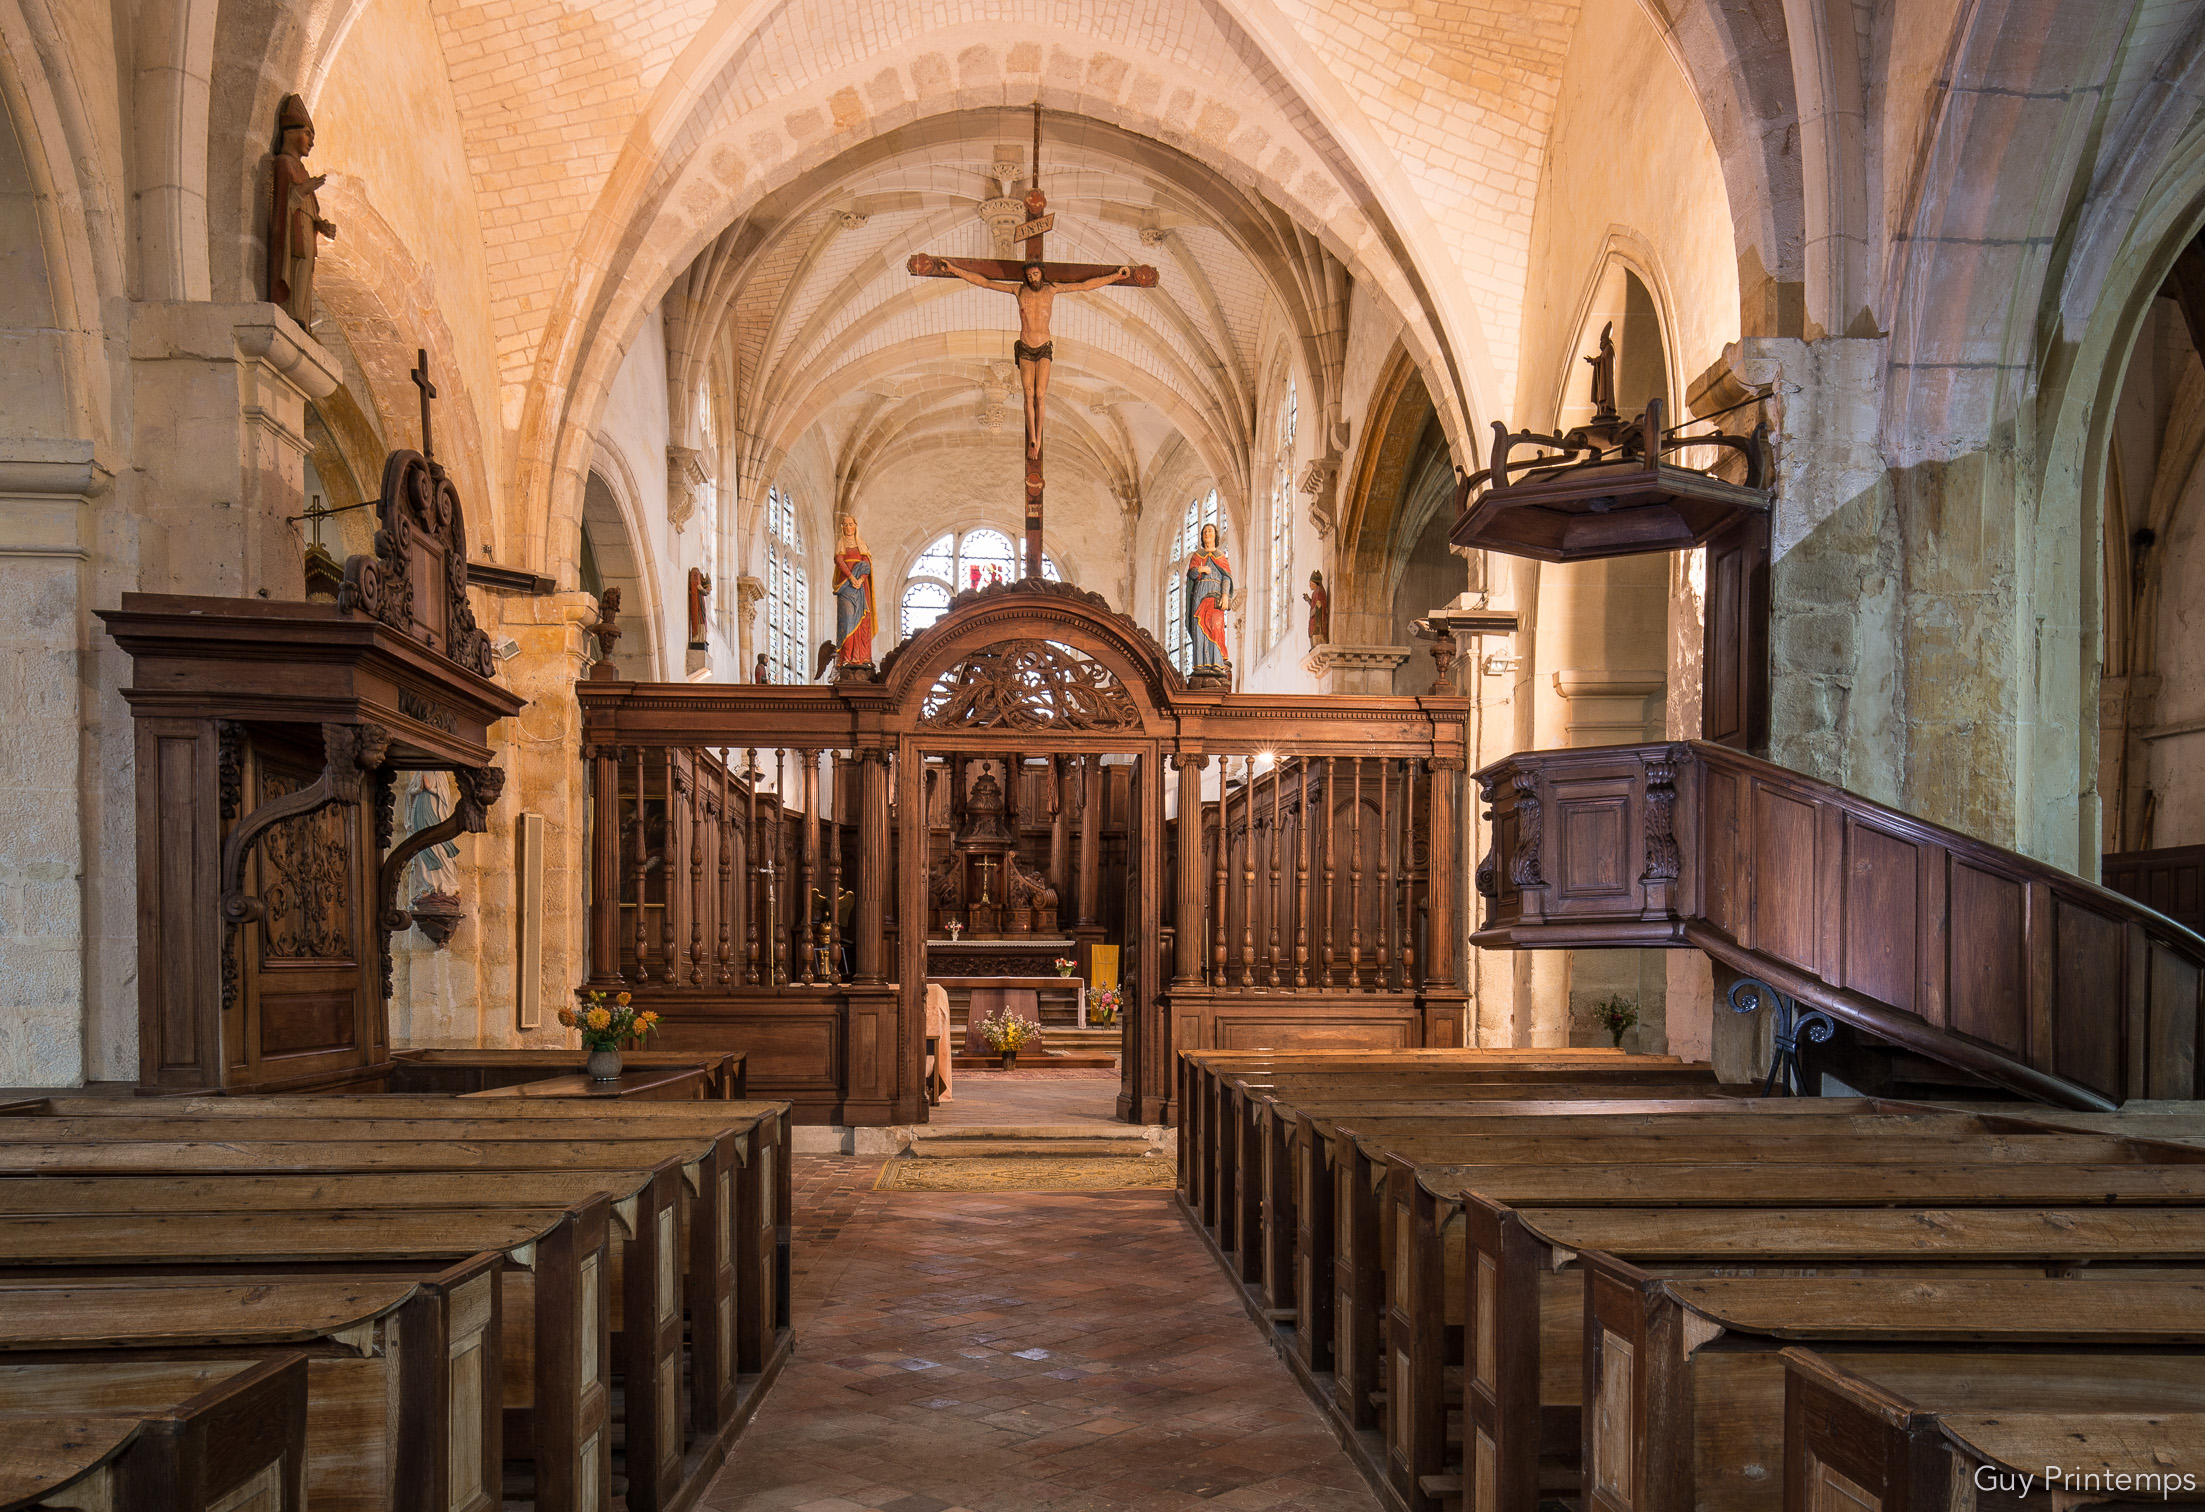 EGLISE NOTRE DAME A COURGIS